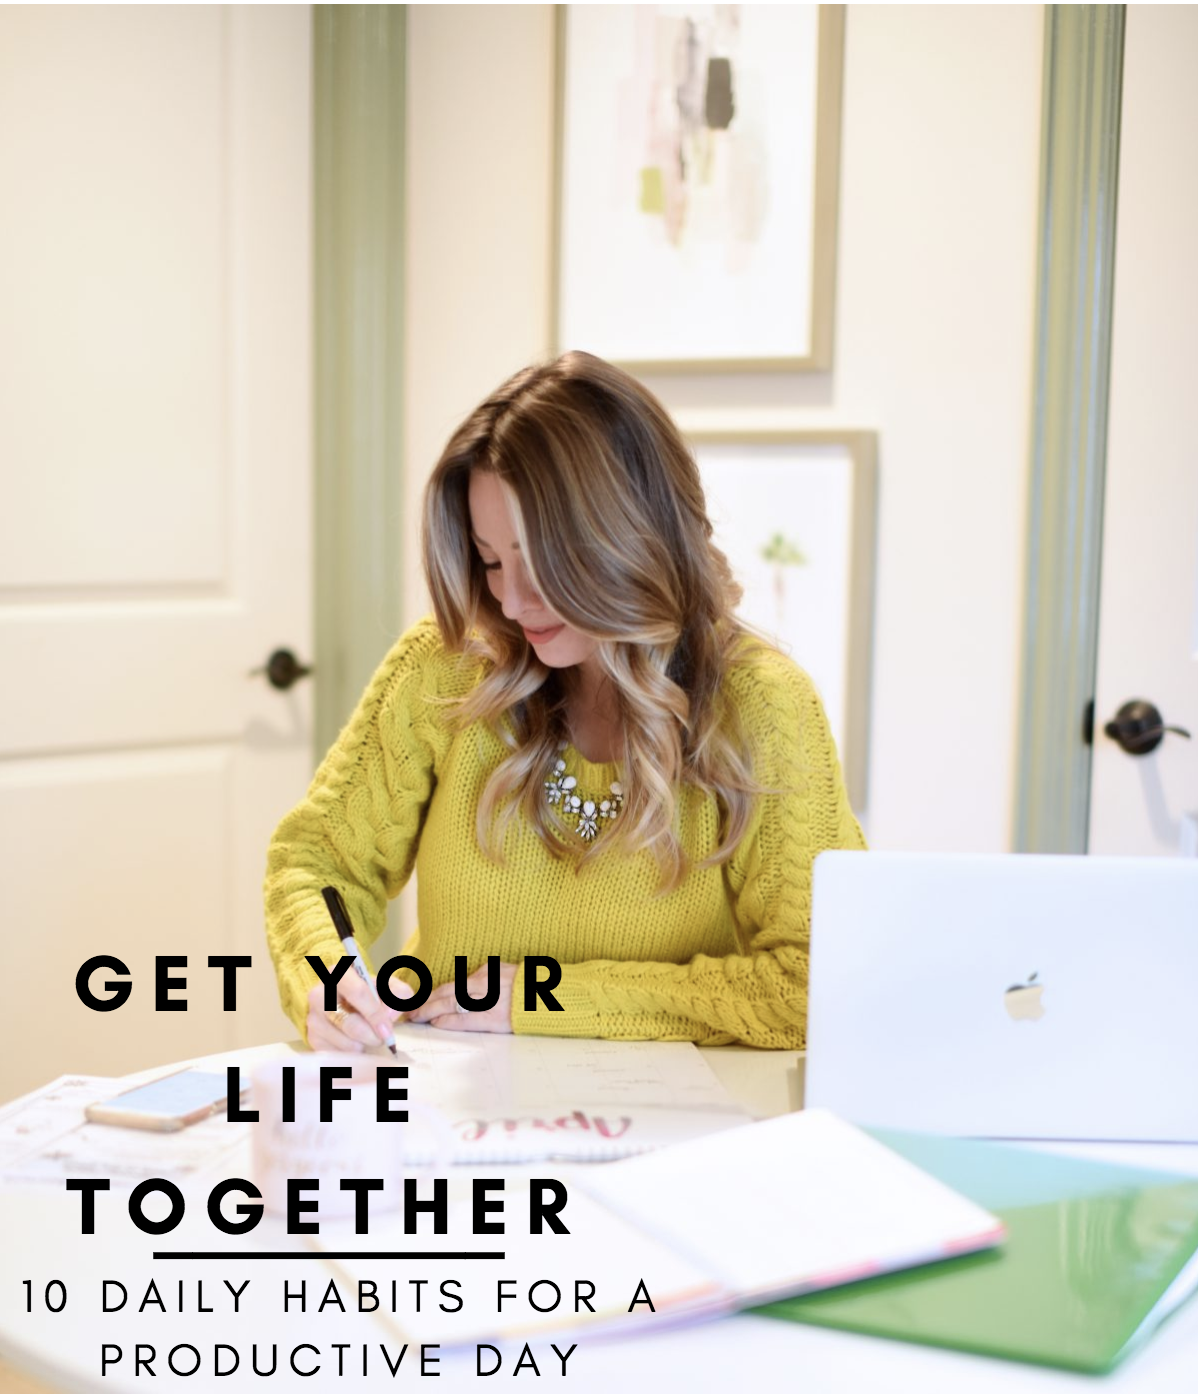 Get Your Life Together | 10 Daily Habits for a Productive Day